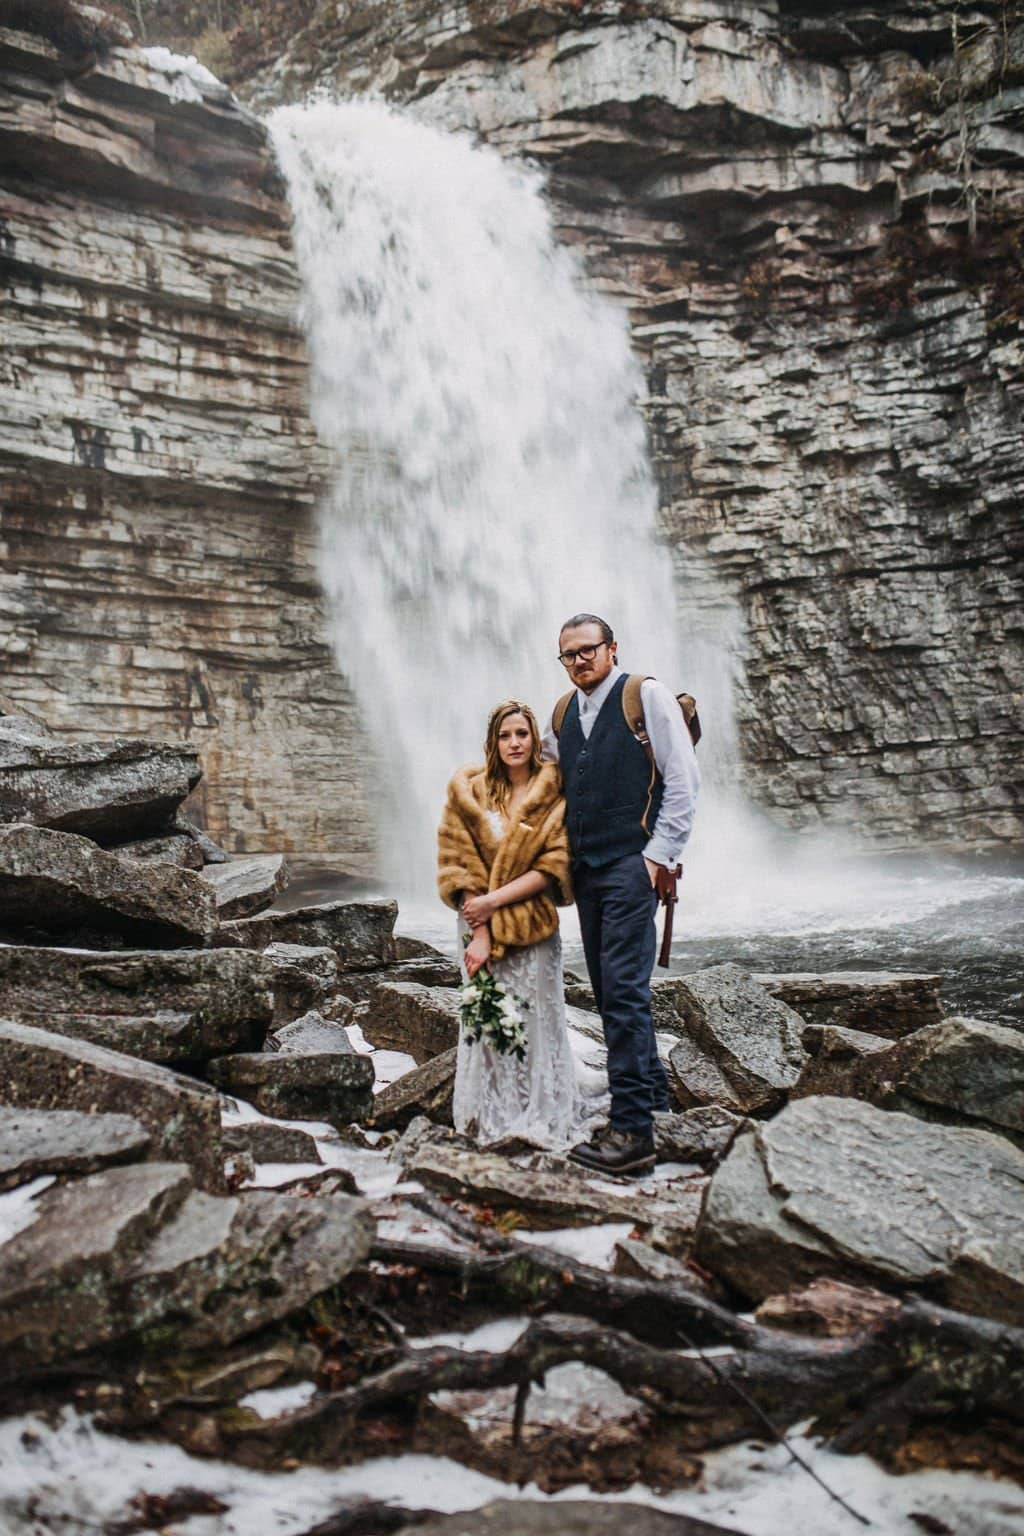 NY falls portraits of bride and groom